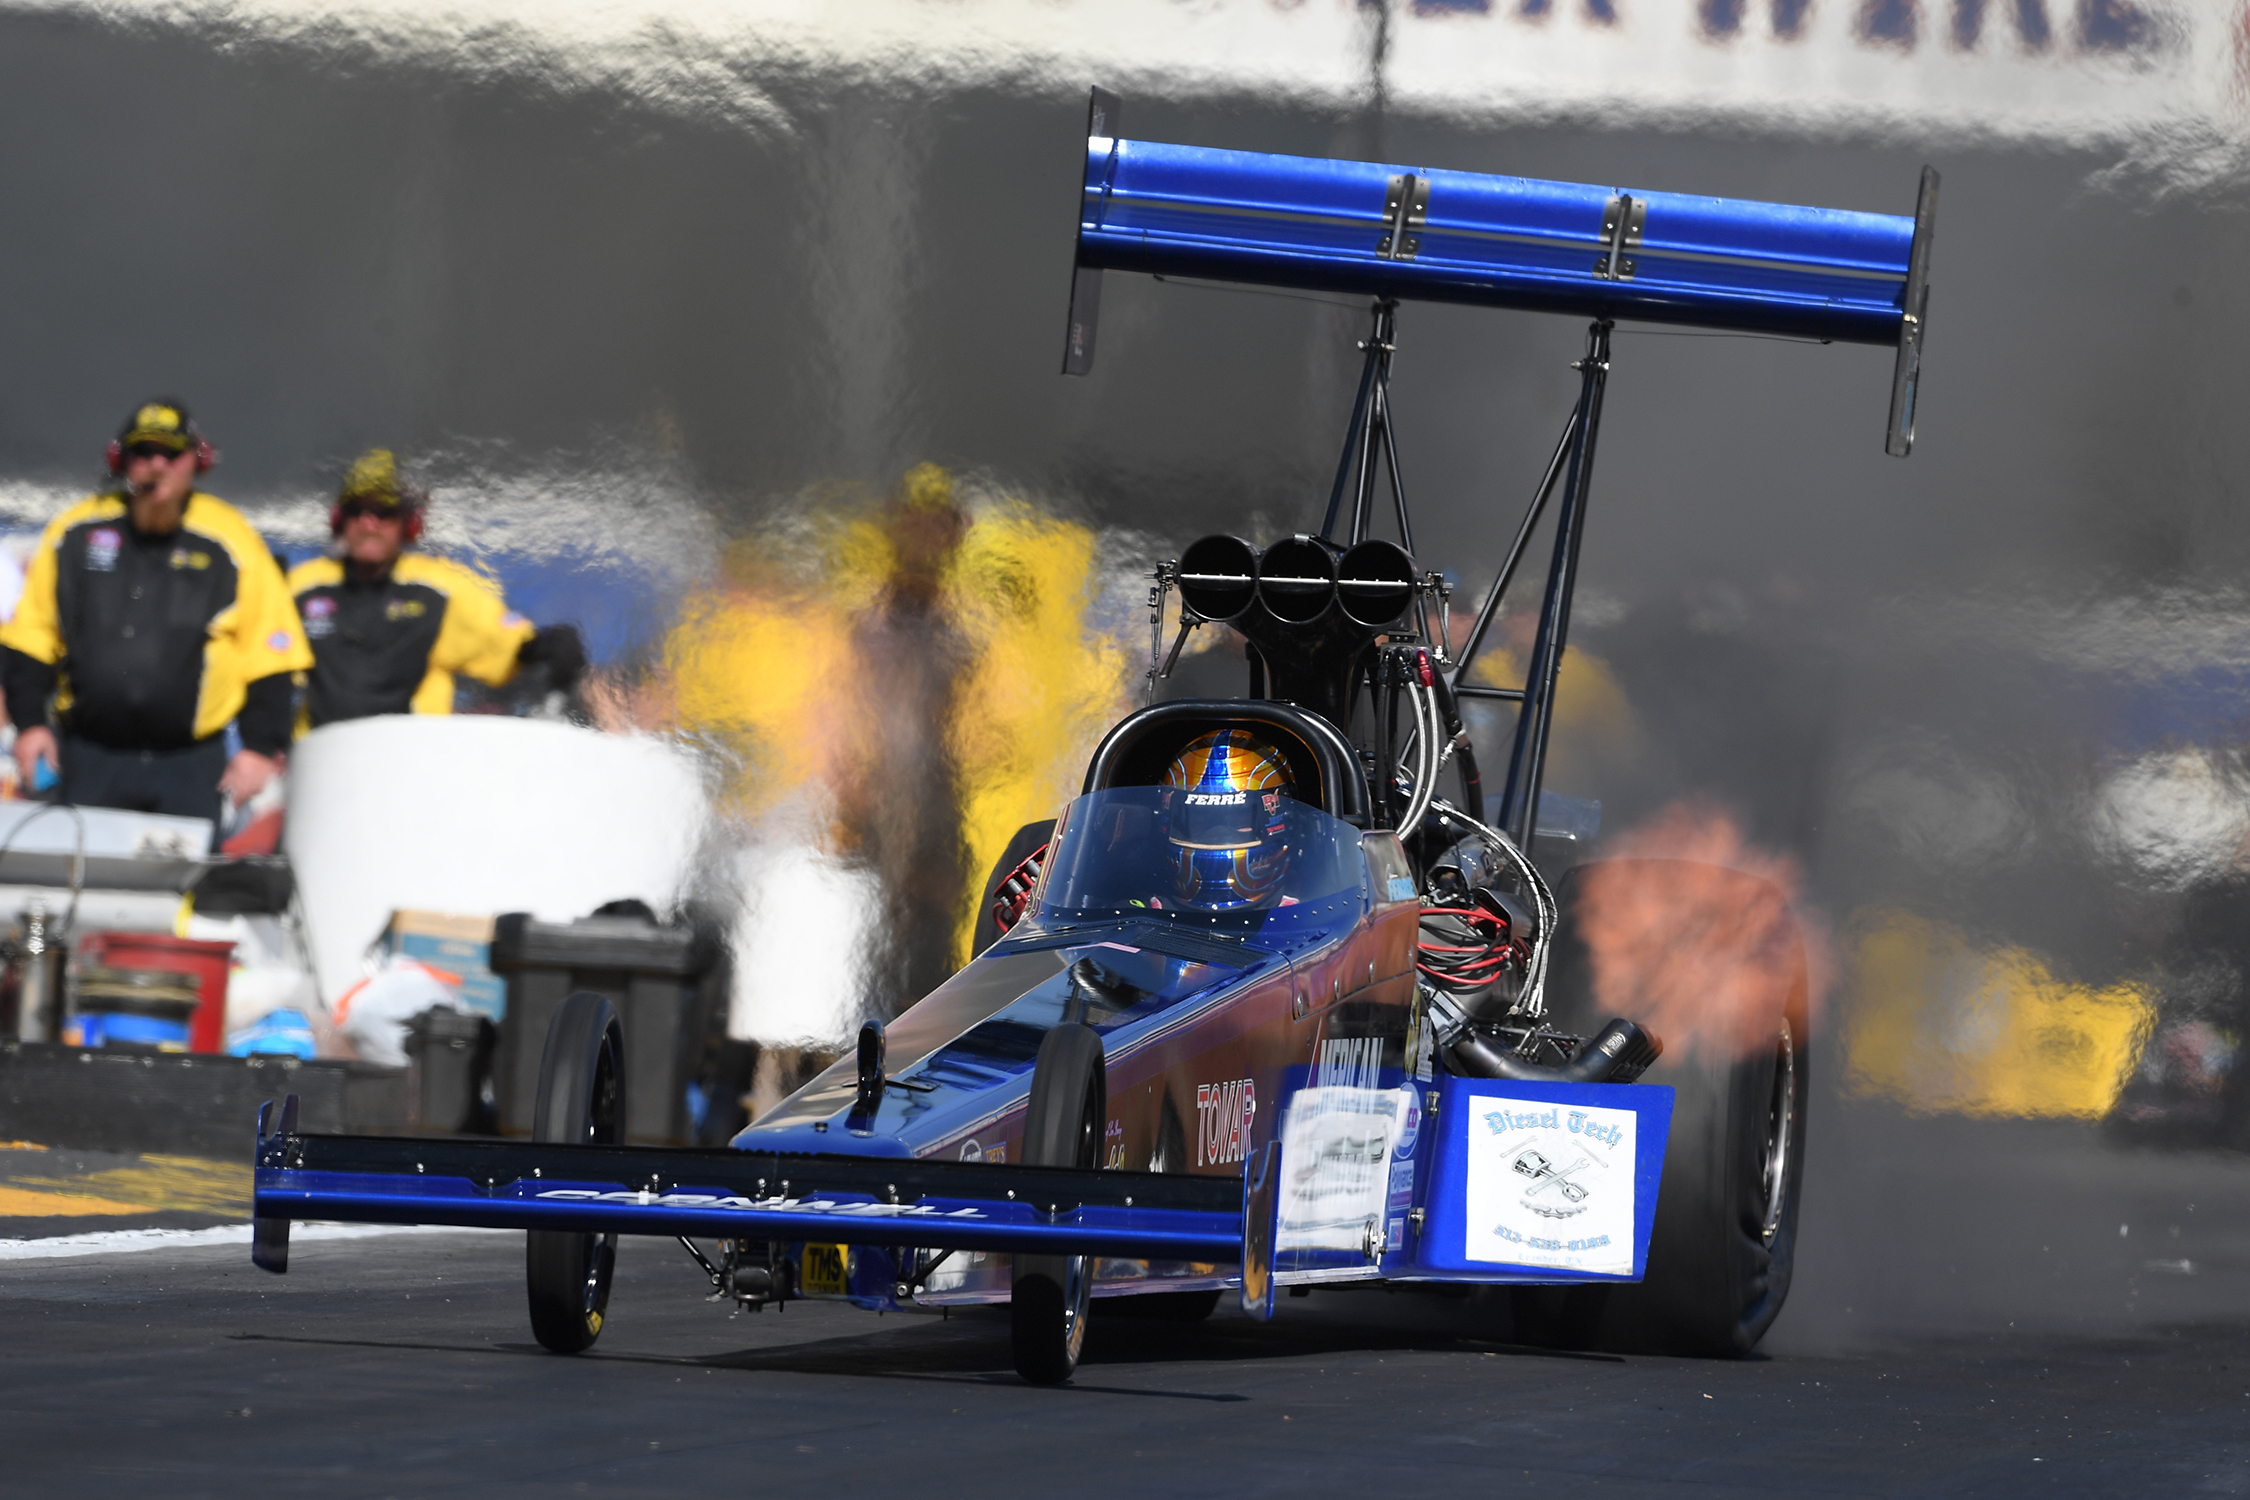 2019 NHRA NEW ENGLAND NATIONALS - EVENT NOTEBOOK